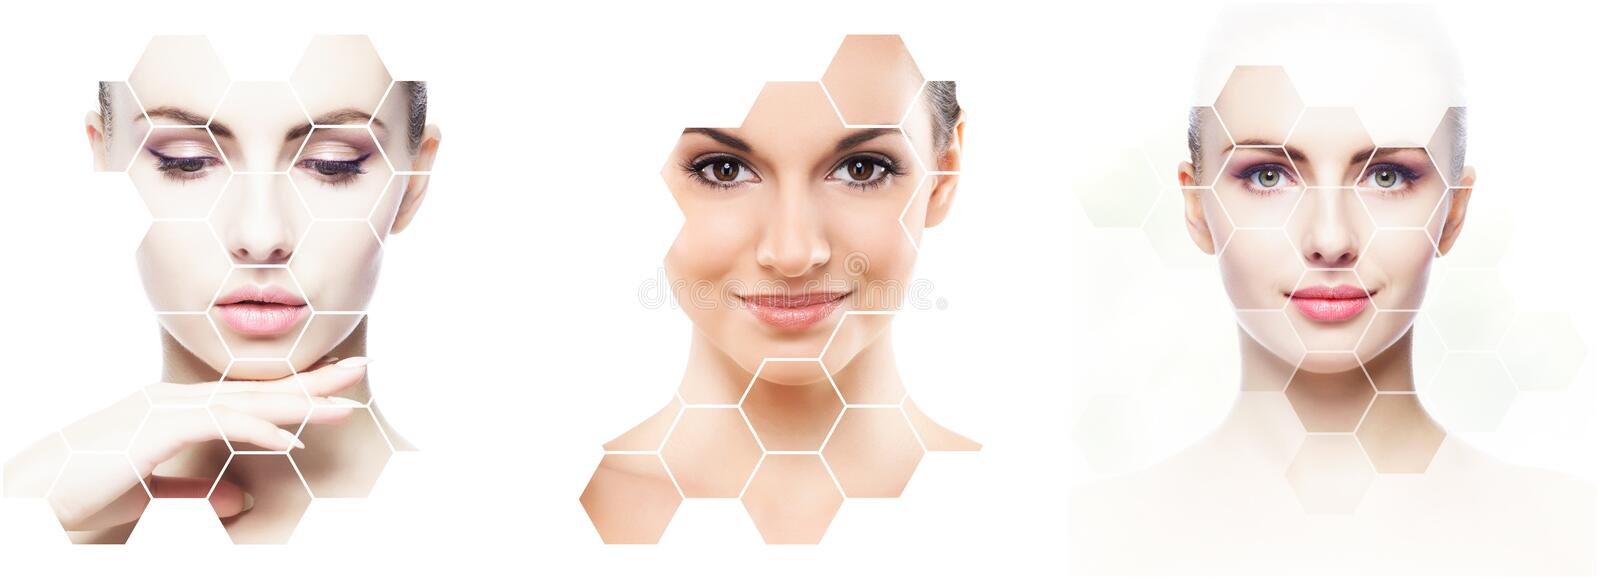 Beautiful face of young and healthy girl in collage. Plastic surgery, skin care, cosmetics and face lifting concept. royalty free stock photography